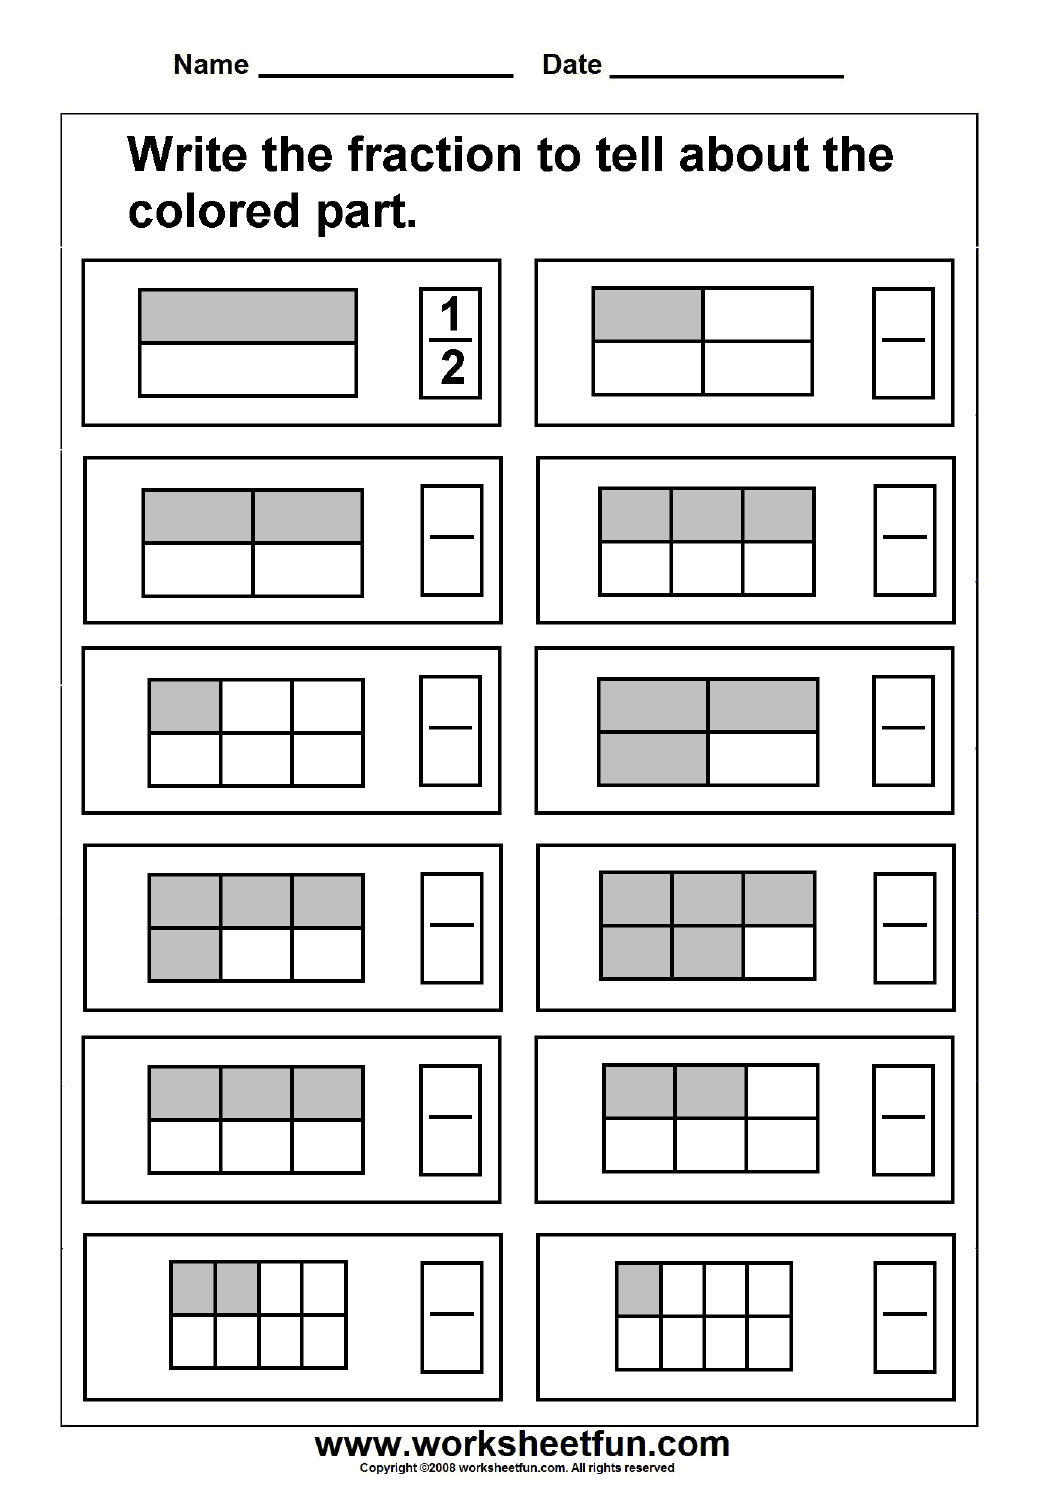 math worksheet : fraction  model  3 worksheets  free printable worksheets  : Fraction Worksheets For Grade 3 Free